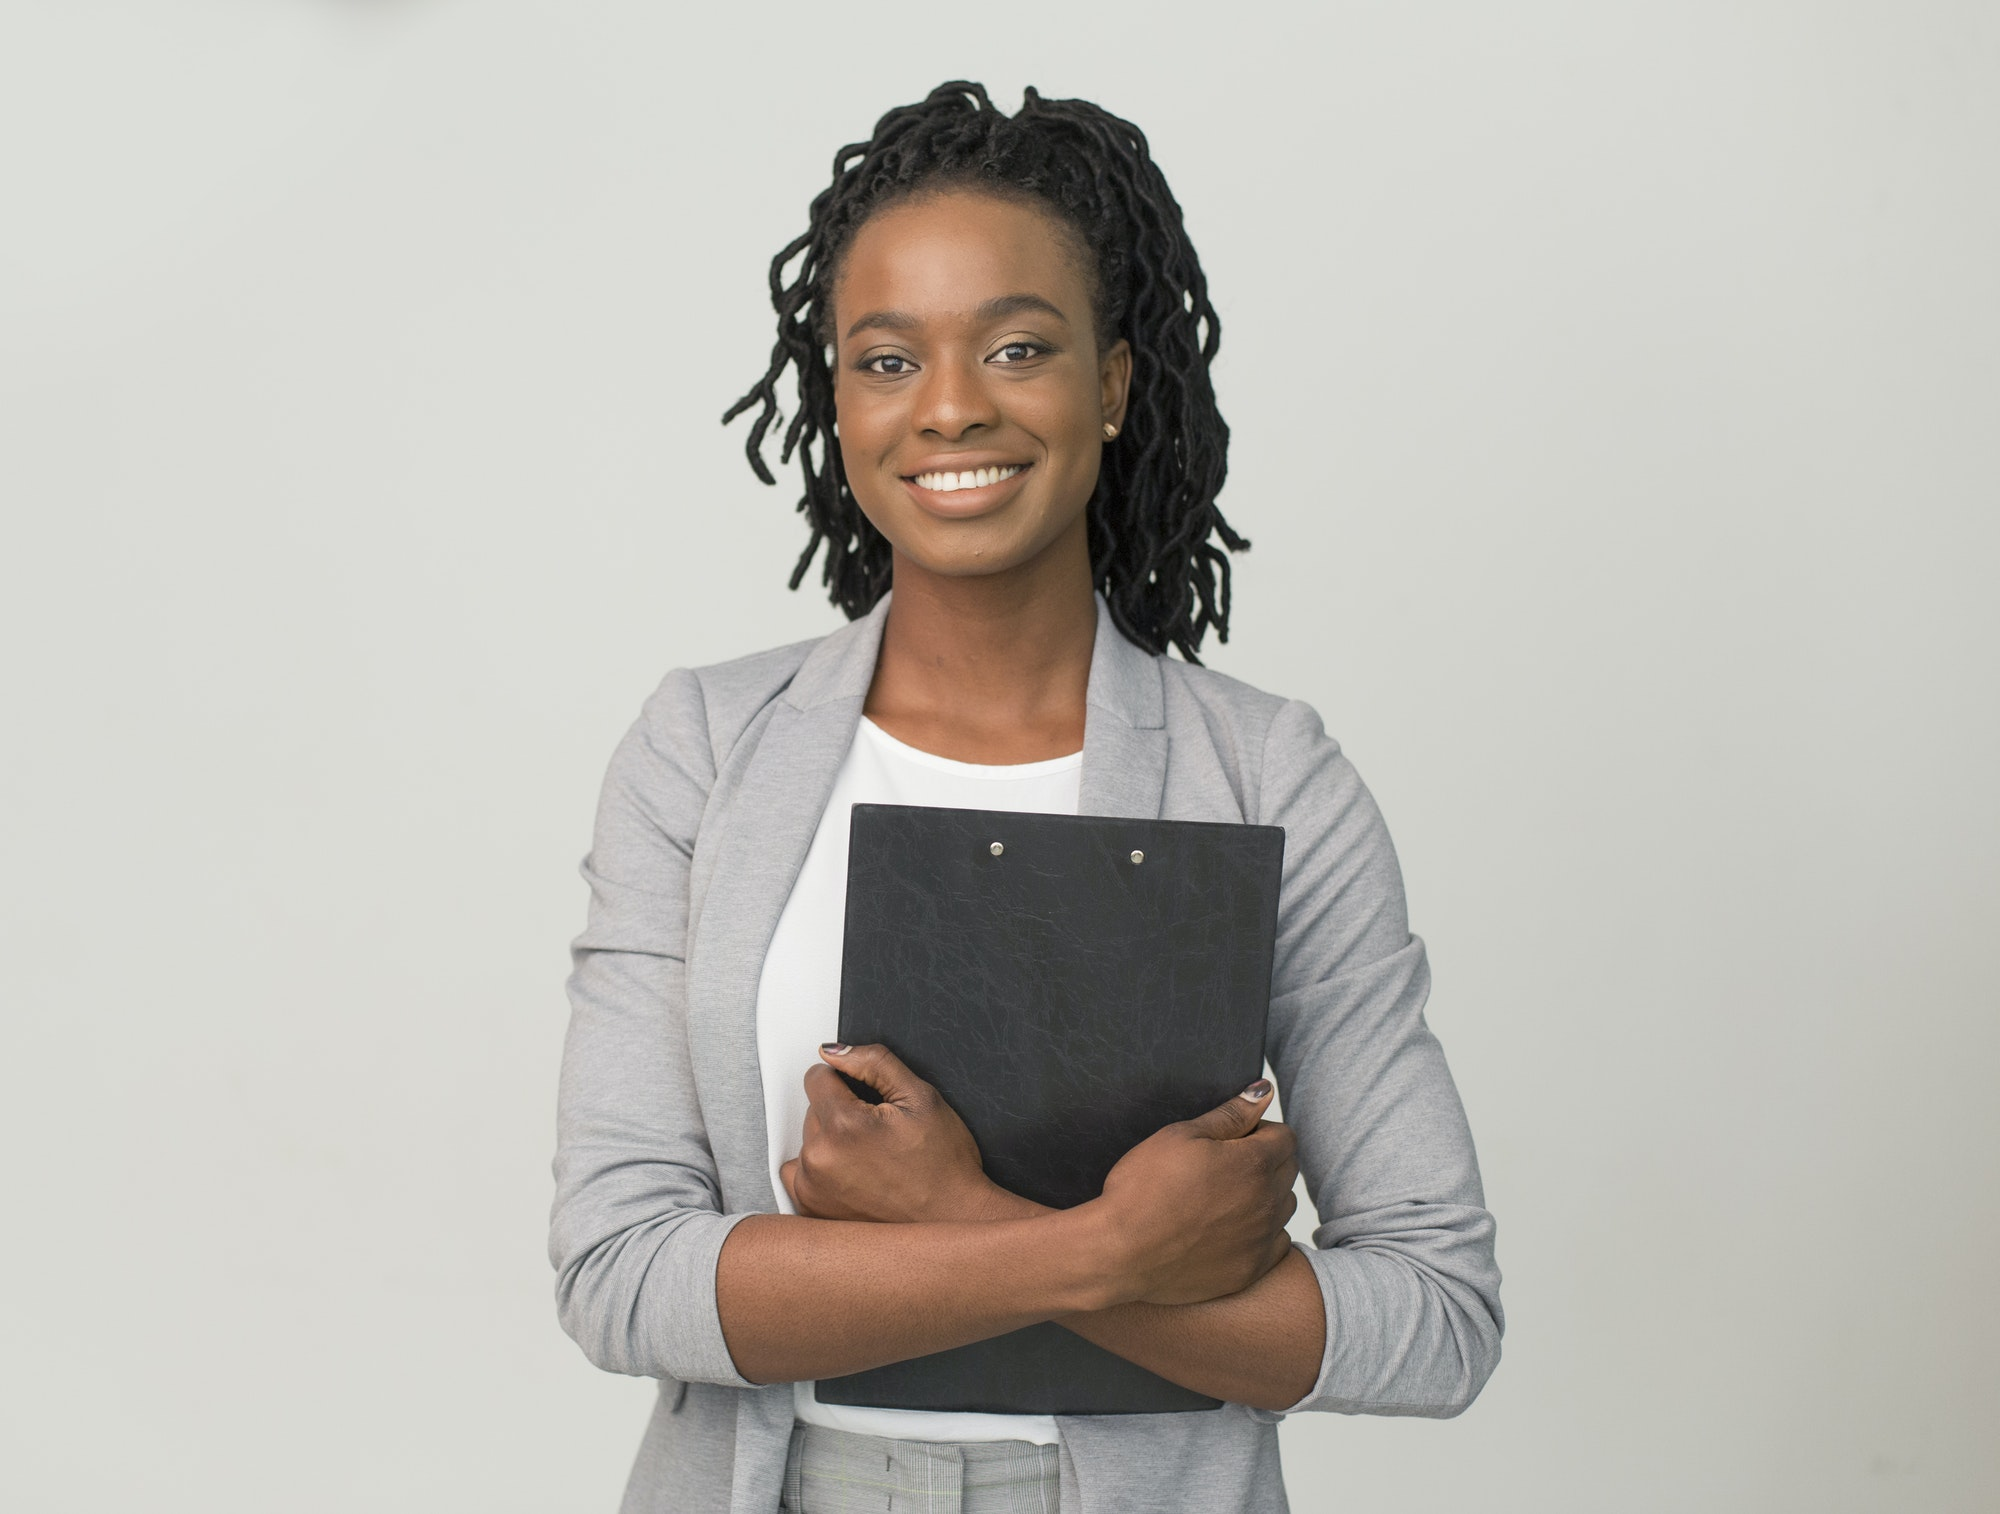 Smiling African American Business Lady Holding Folder, Studio Shot